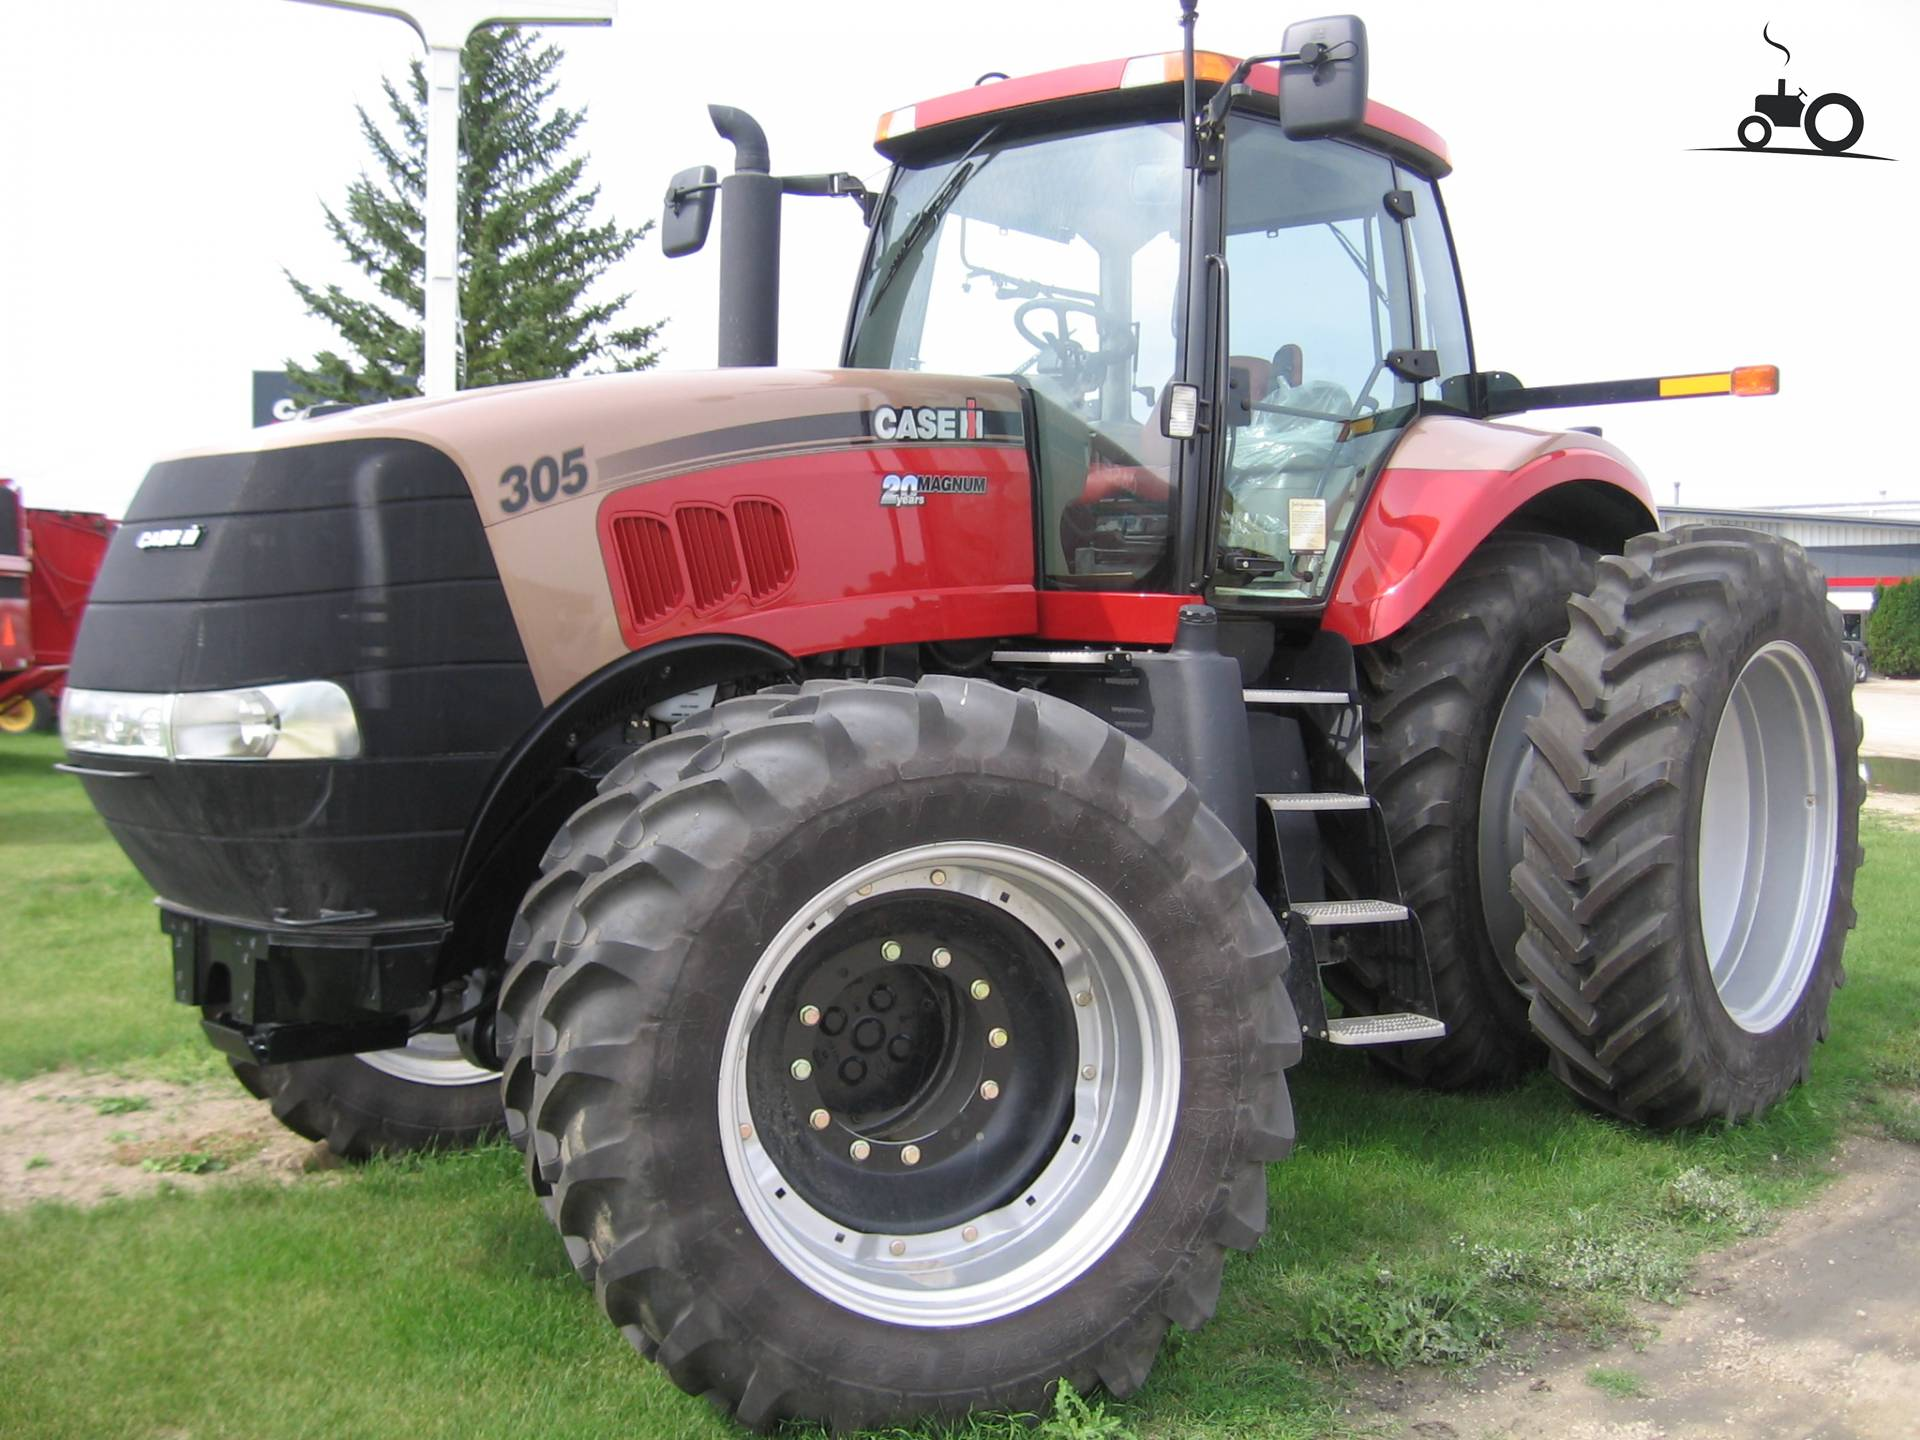 case ih 305 A battery for every need batteries plus bulbs has a wide selection of batteries that can help you power all of your ji case & case ih magnum 305 wheel farm tractor farm equipment, whether it's for a small plot of land or a massive farm.